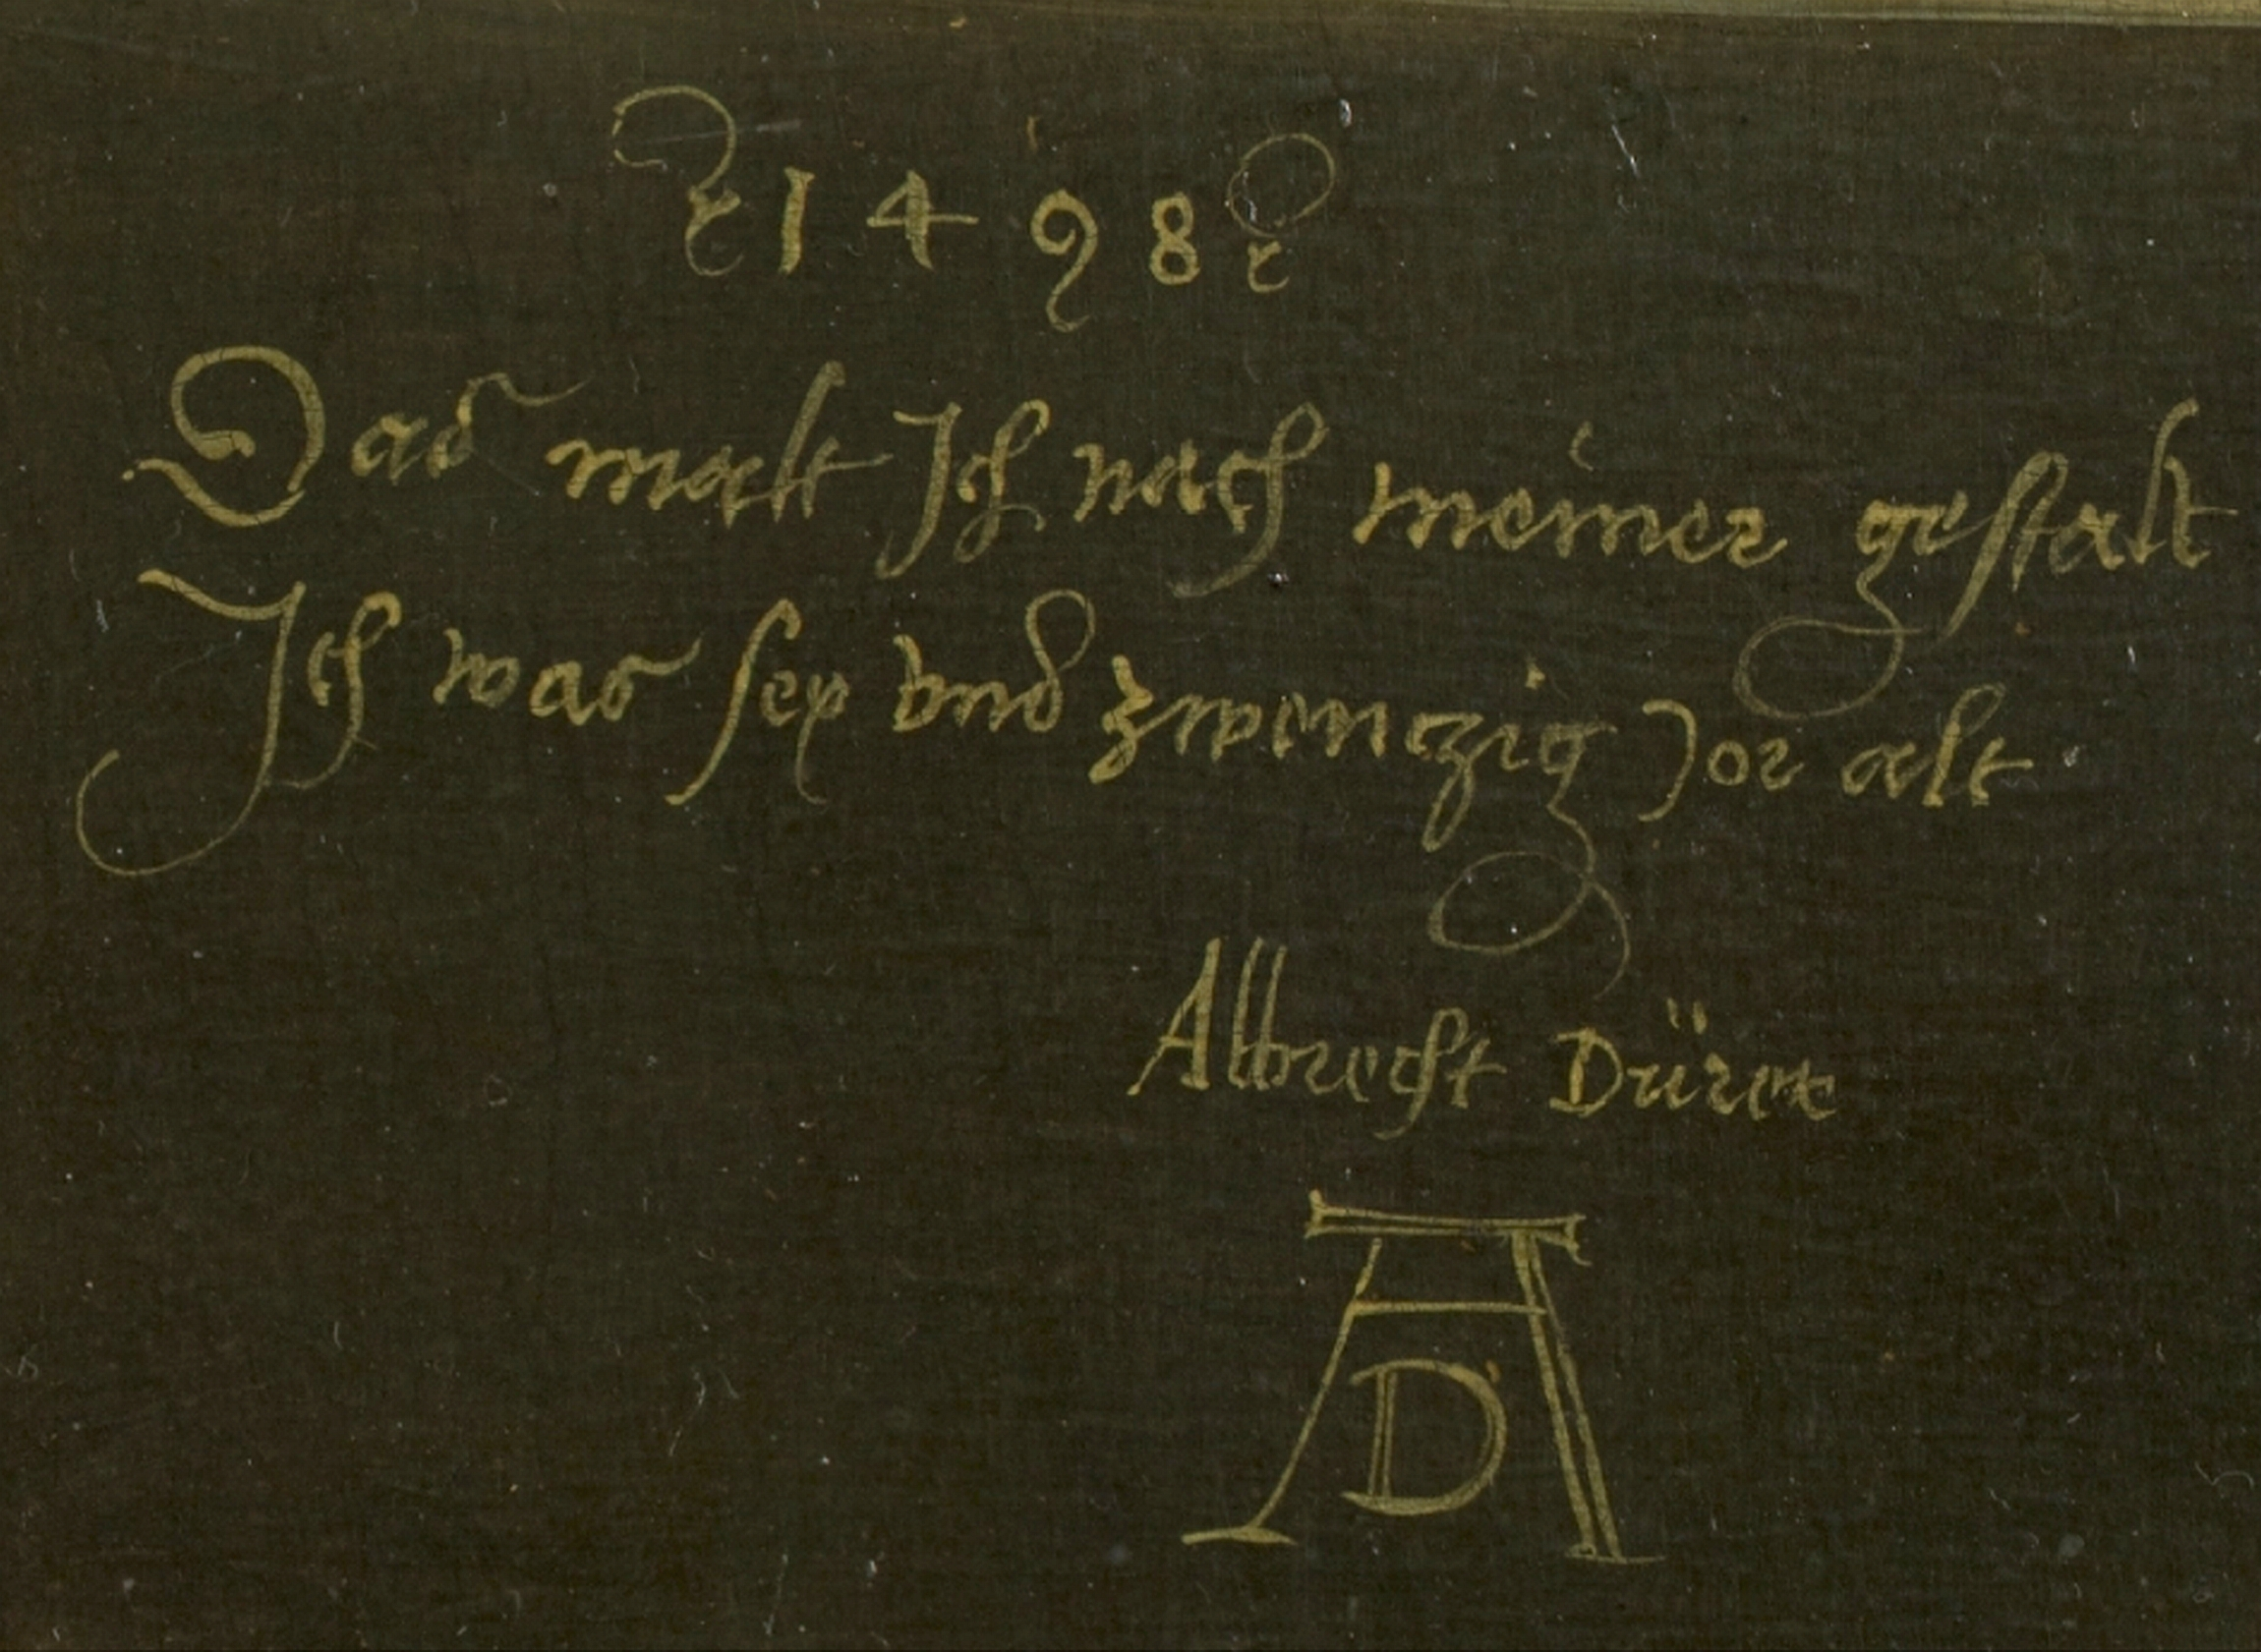 File:Dürer, Albrecht - Self-Portrait (Madrid), inscription -1498